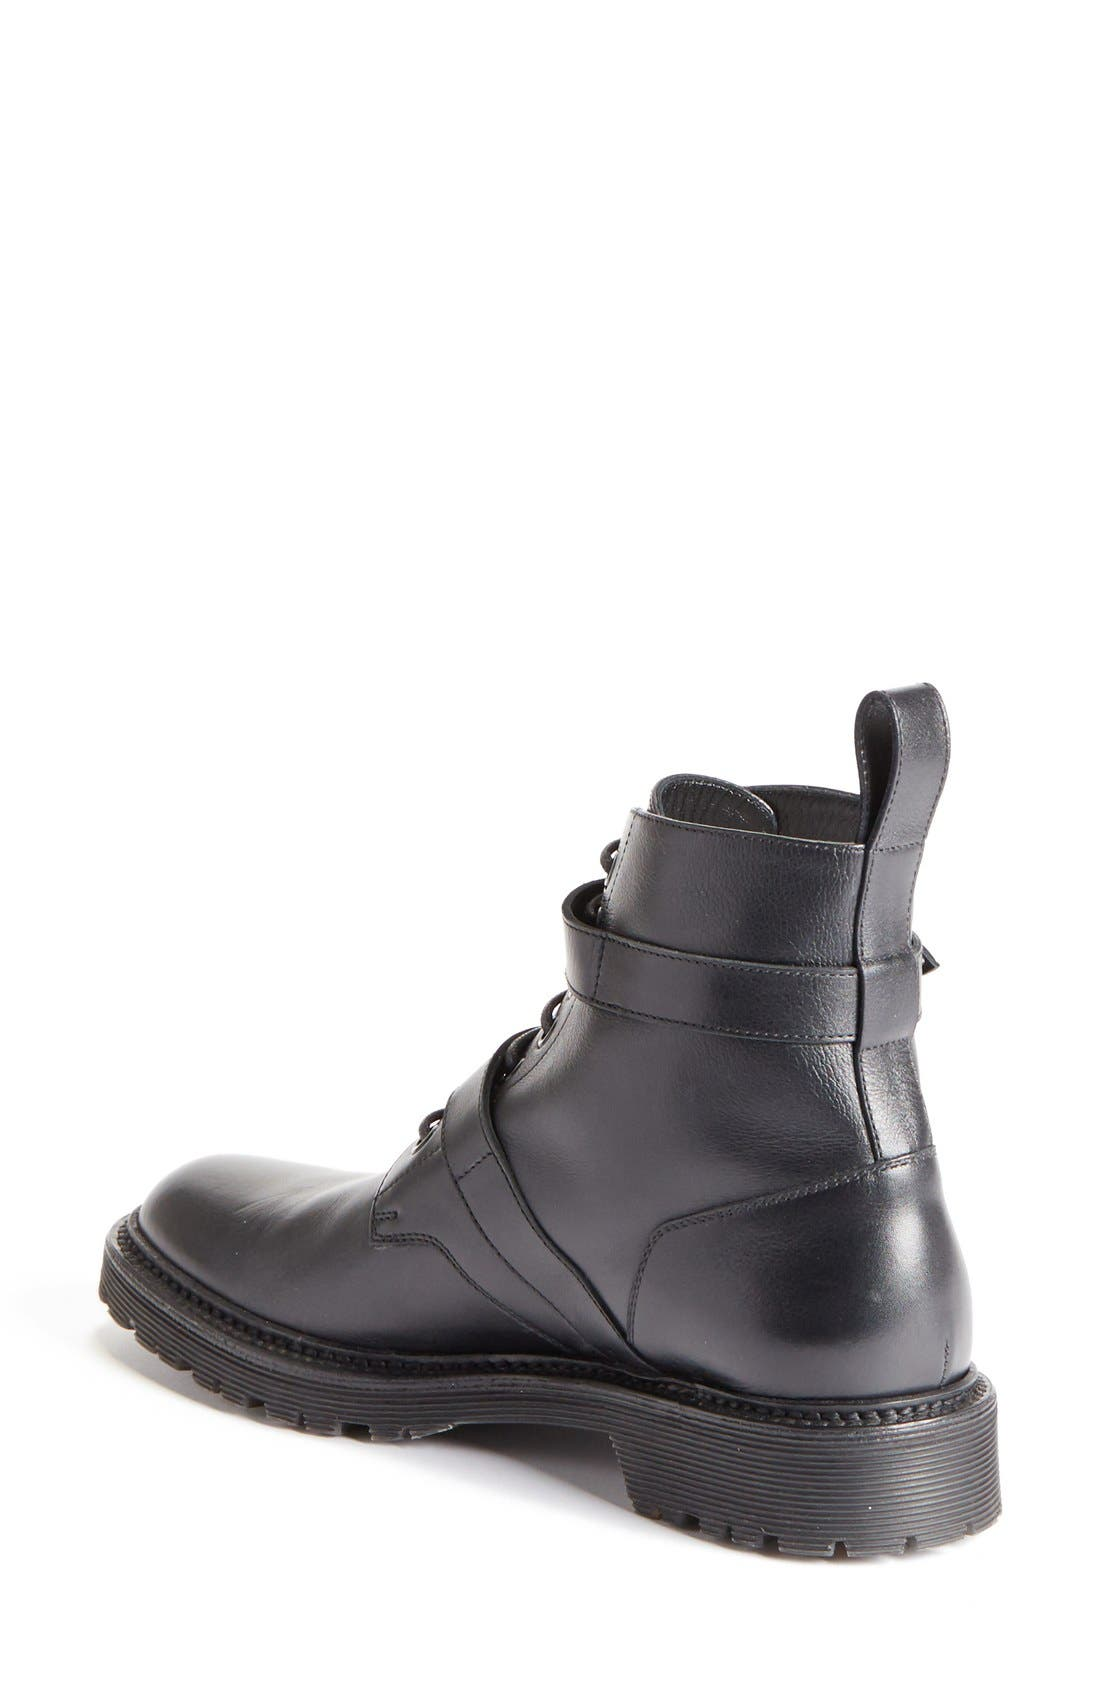 Alternate Image 2  - Saint Laurent 'Army' Military Bootie (Women)